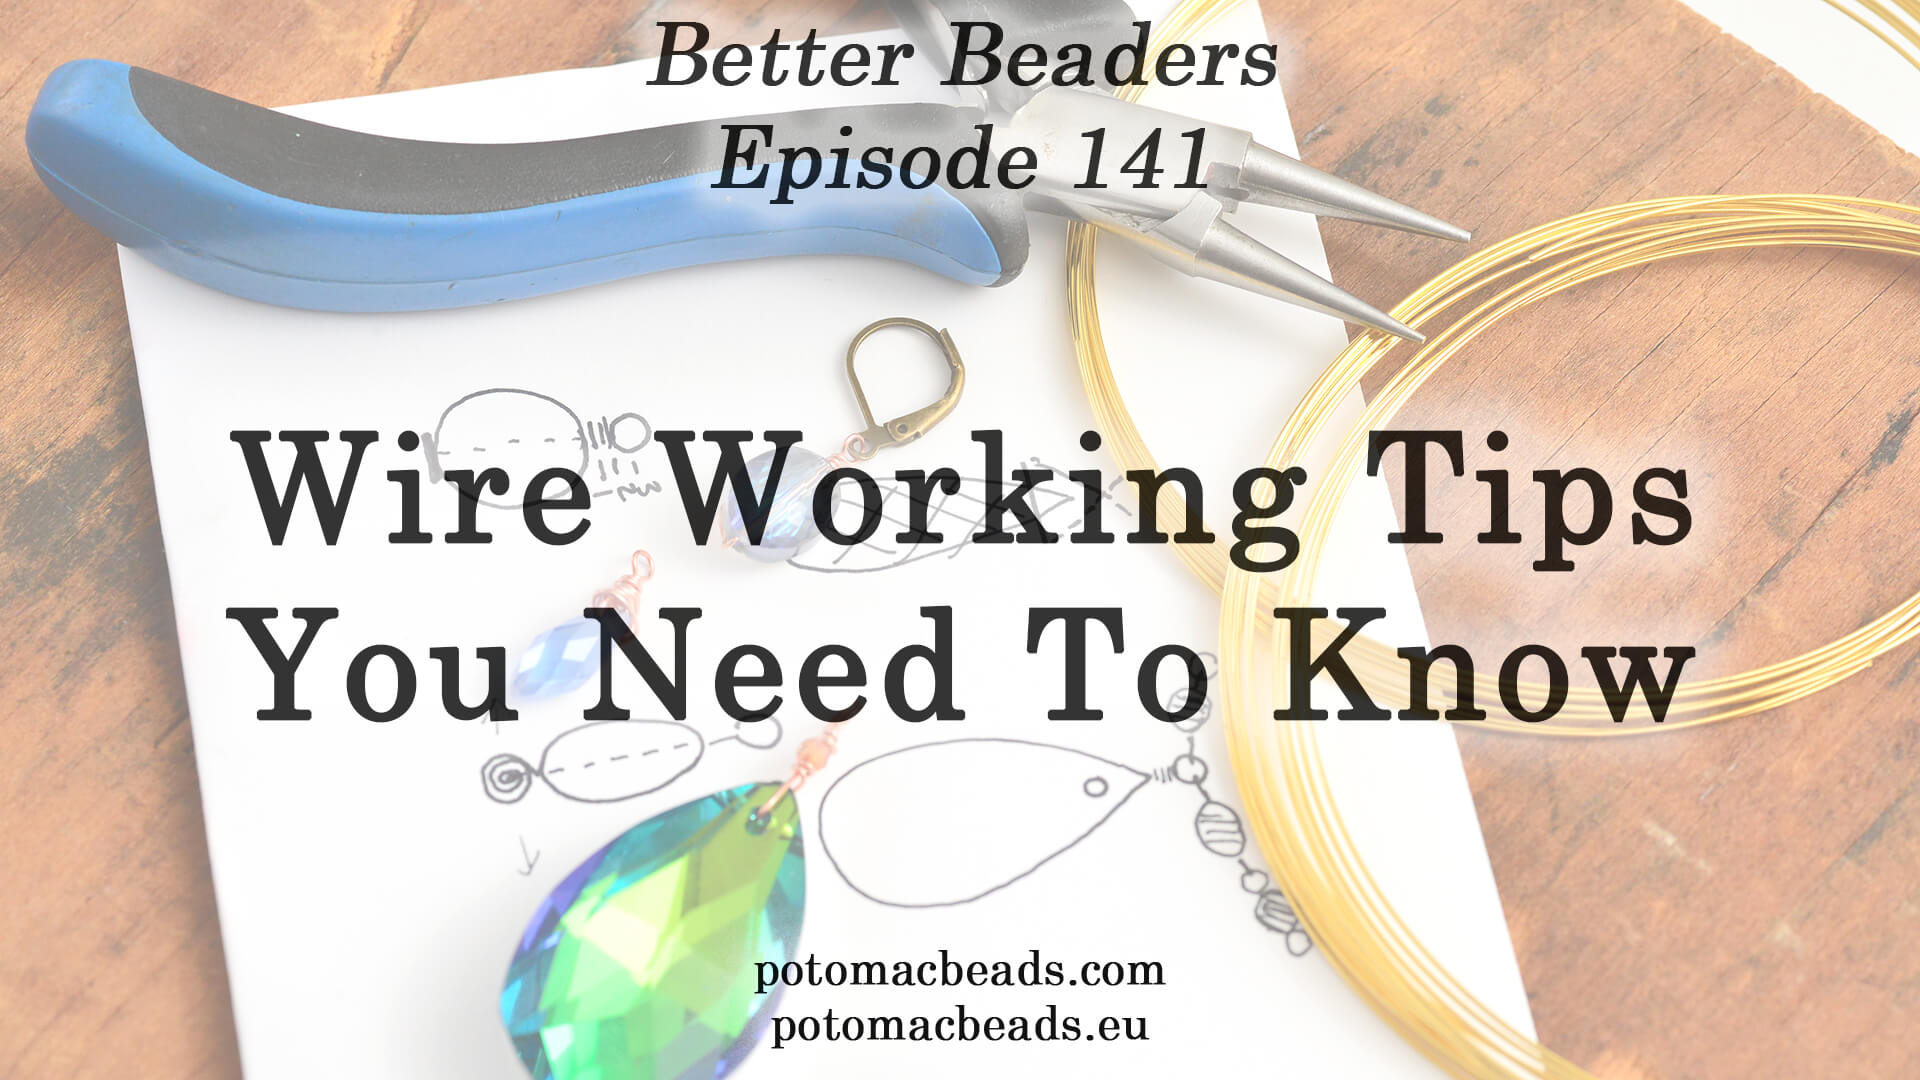 How to Bead / Better Beader Episodes / Better Beader Episode 141 - Wire Working Tips You Need to Know